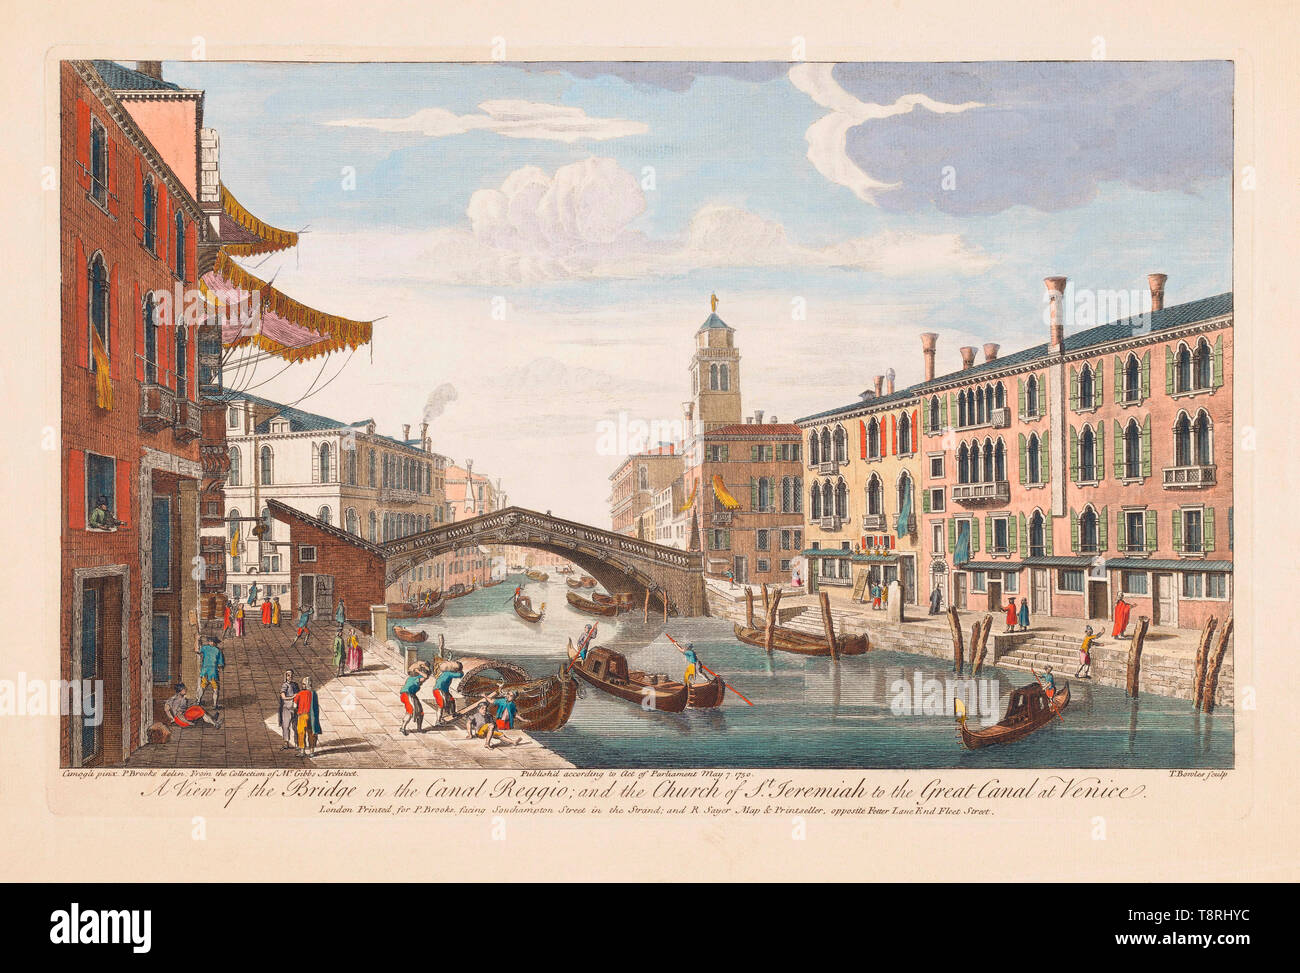 A view of the bridge on the Canal Reggio and the Church of St. Jeremiah to the Great Canal at Venice.  From an engraving dated 1750 by Thomas Bowles II after a work by P. Brookes.  Later colourization. - Stock Image